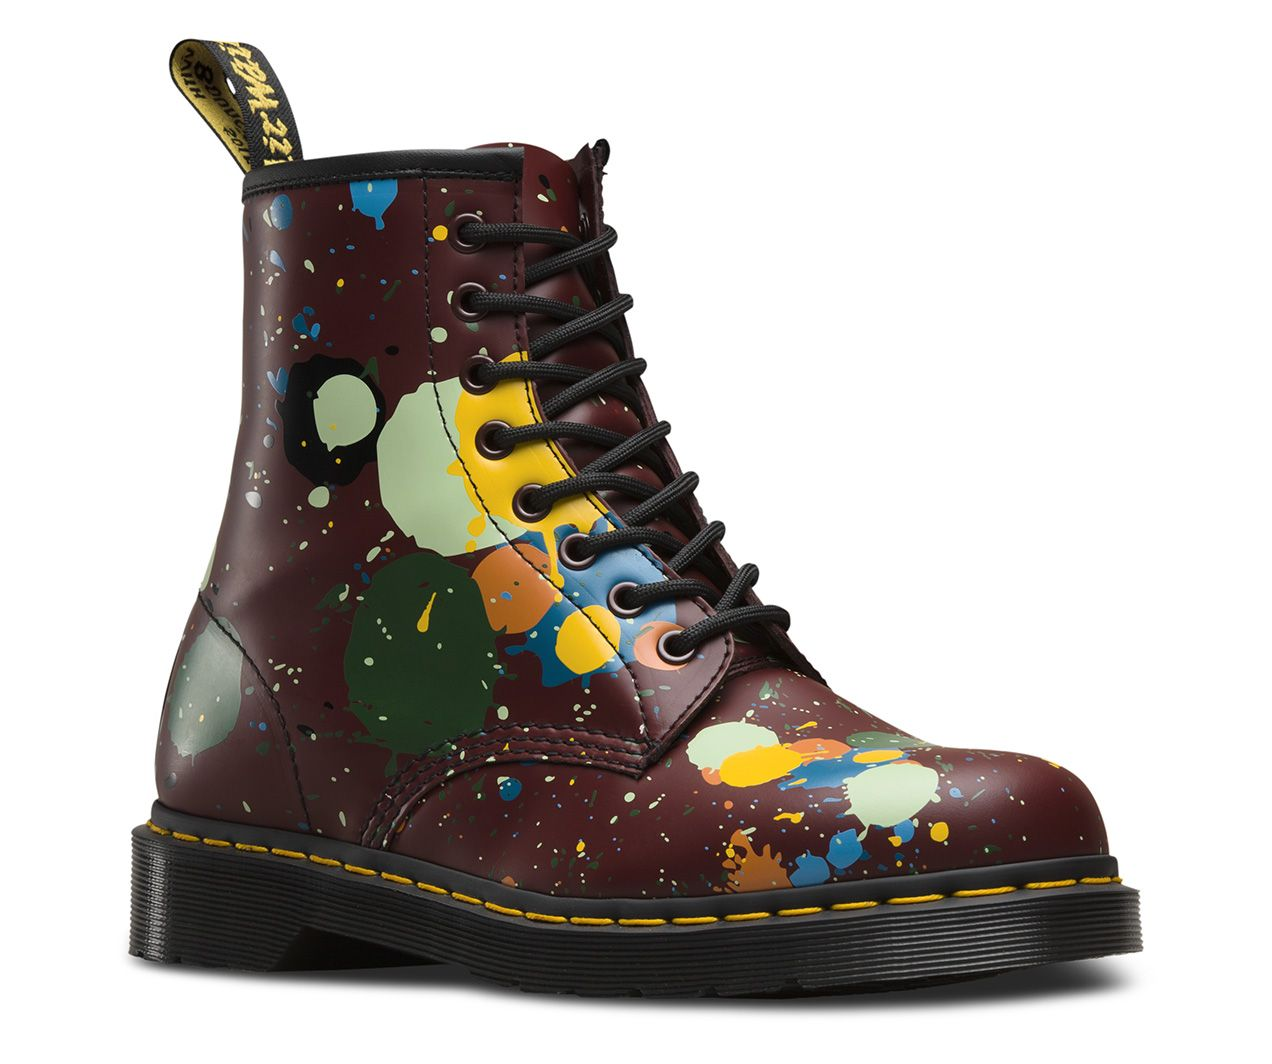 8 Eye Demented Are Go (The Day The Earth Spat Blood) Dr. Martens Boots | Dr  Martens | Pinterest | Dr martens, Blood and Dr martens boots sale